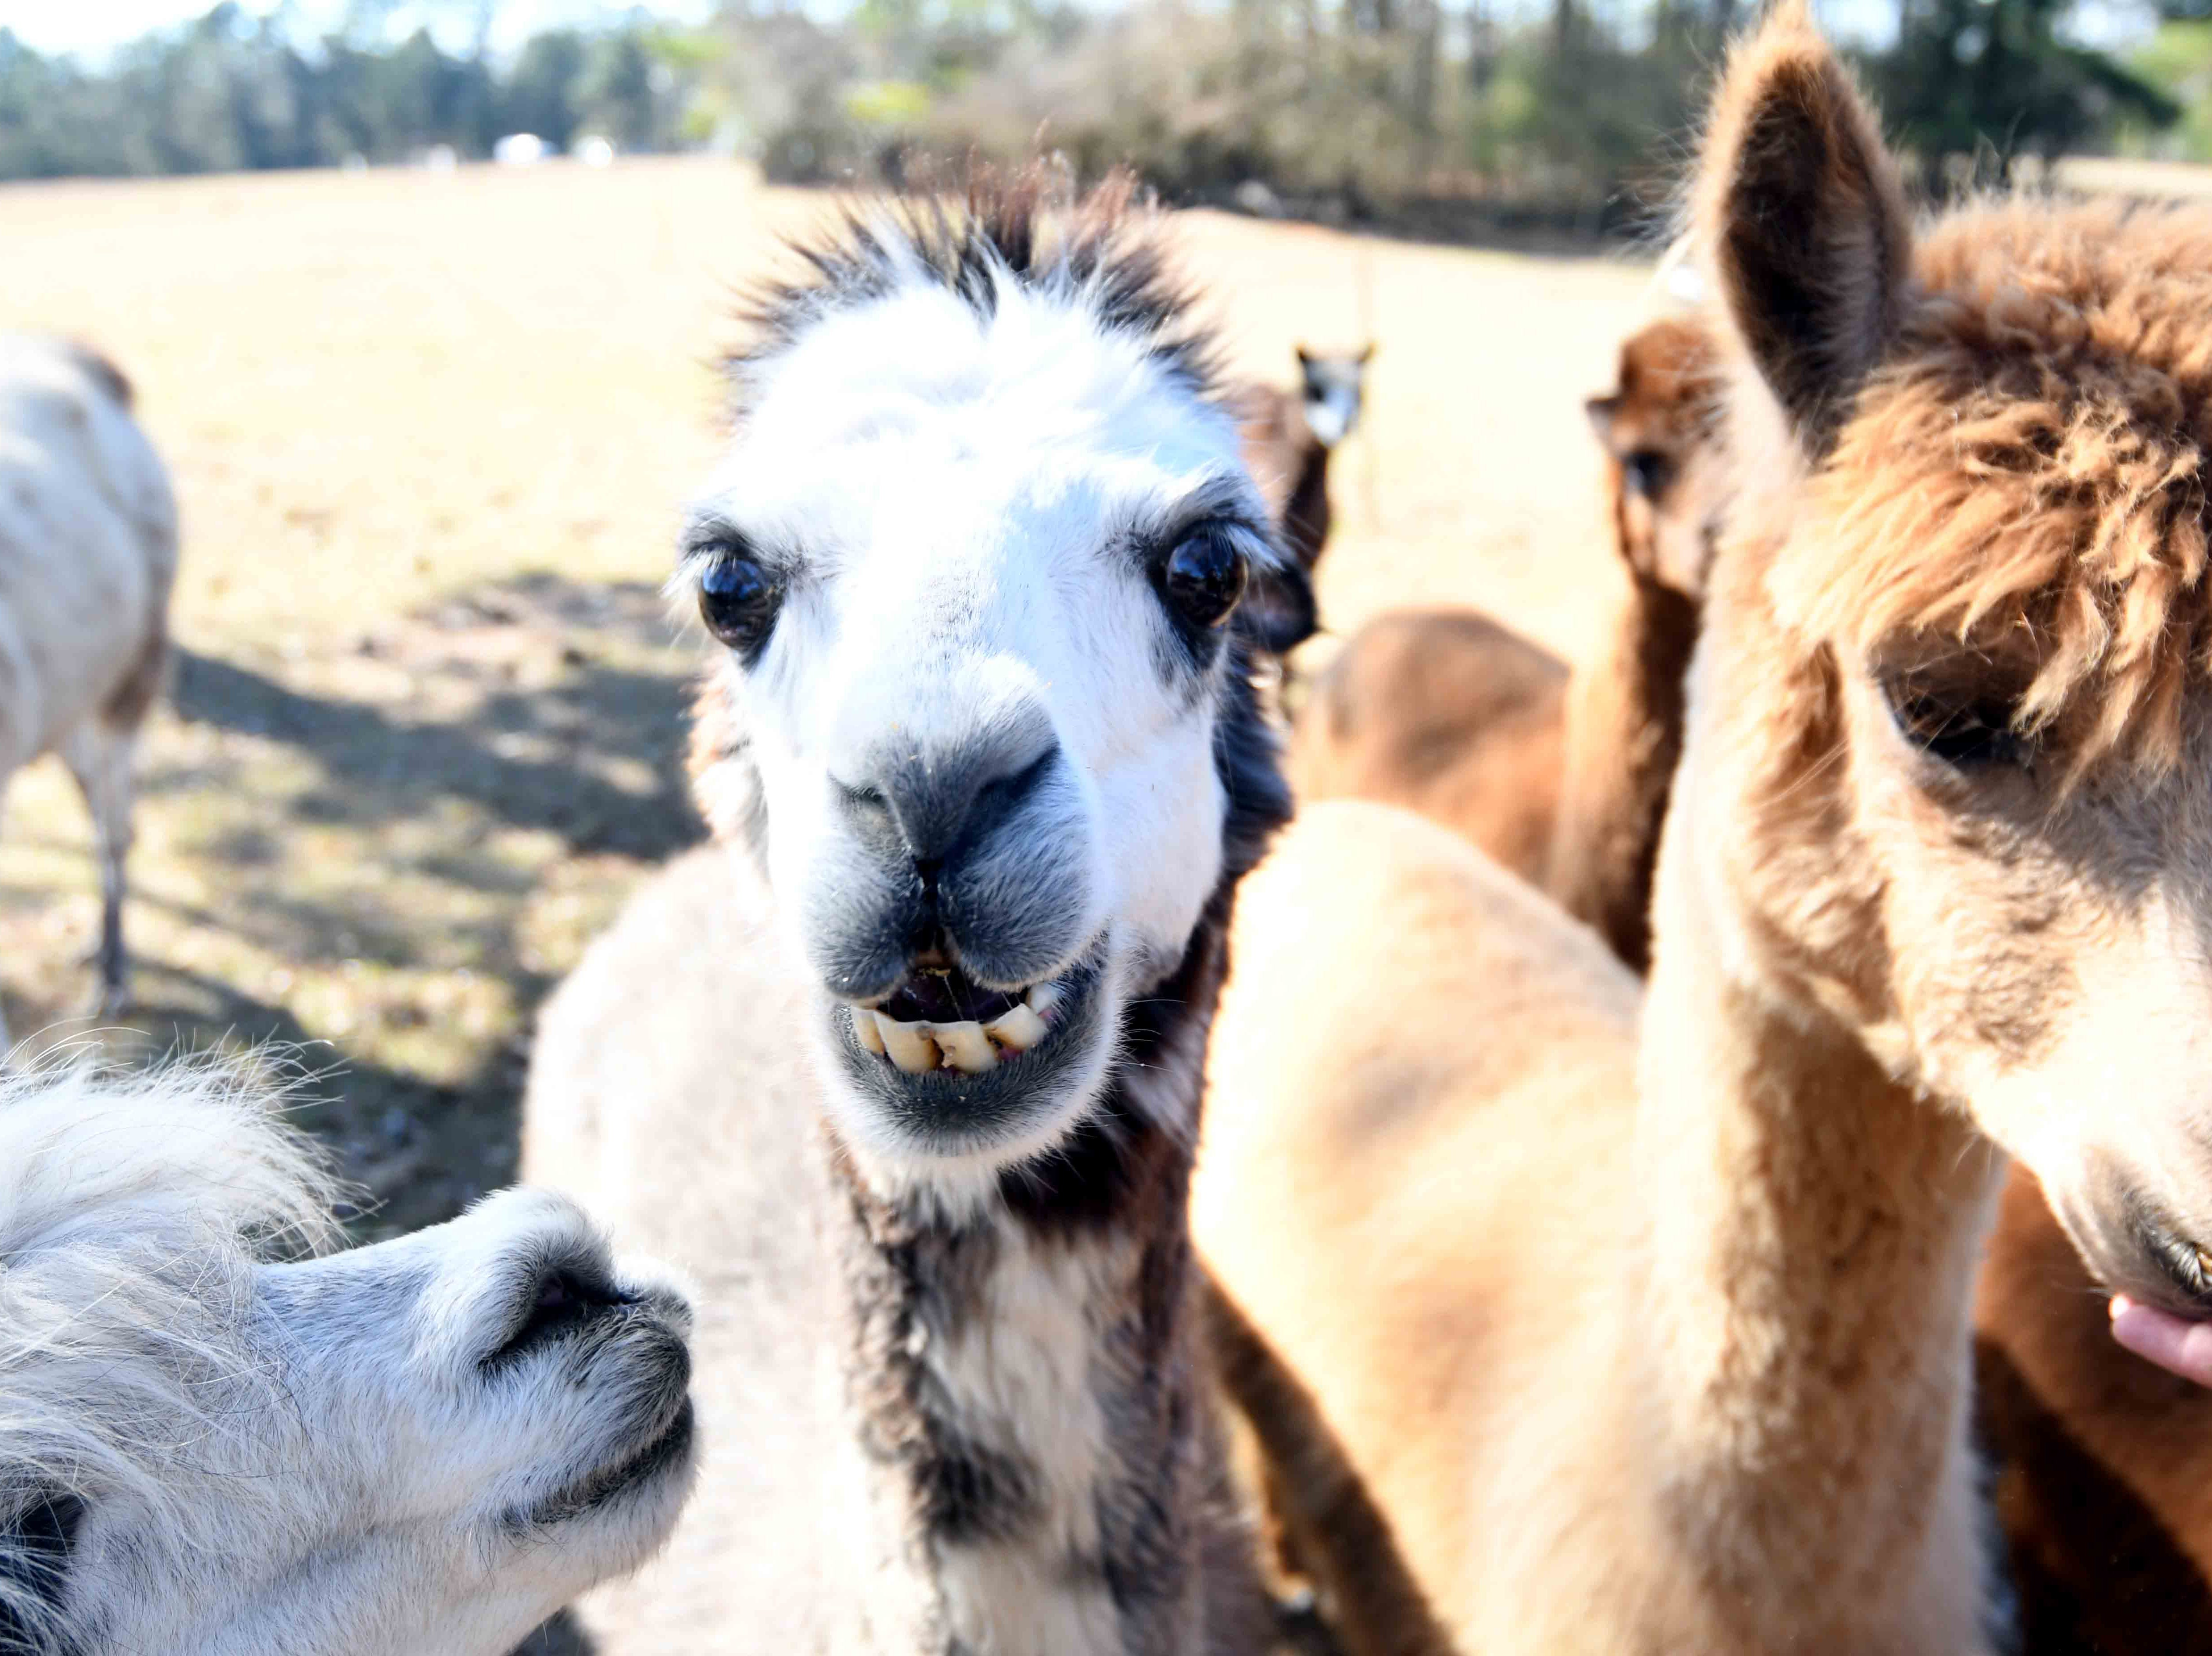 Mary Ann Stroka owns 20 alpacas on her farm in Stringer, Mississippi. The farm shears their alpacas and uses their wool to make yarn for a variety of clothing. Farm tours are available including a store where alpaca products can be bought.